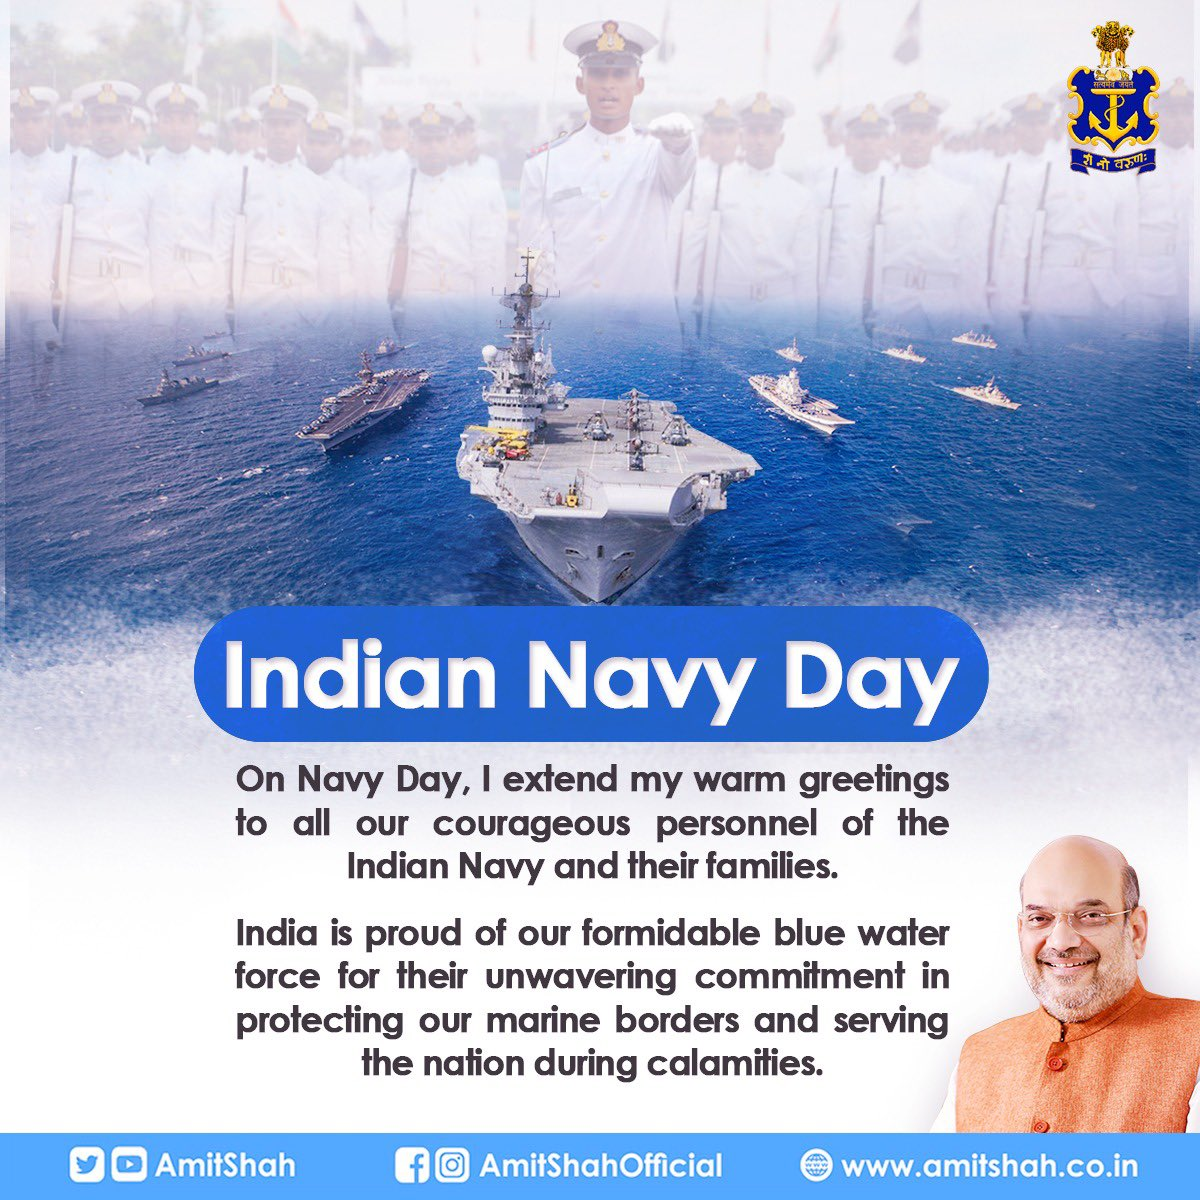 On Navy Day, I extend my warm greetings to all our courageous personnel of the Indian Navy and their families.   India is proud of our formidable blue water force for their unwavering commitment in protecting our marine borders and serving the nation during calamities.